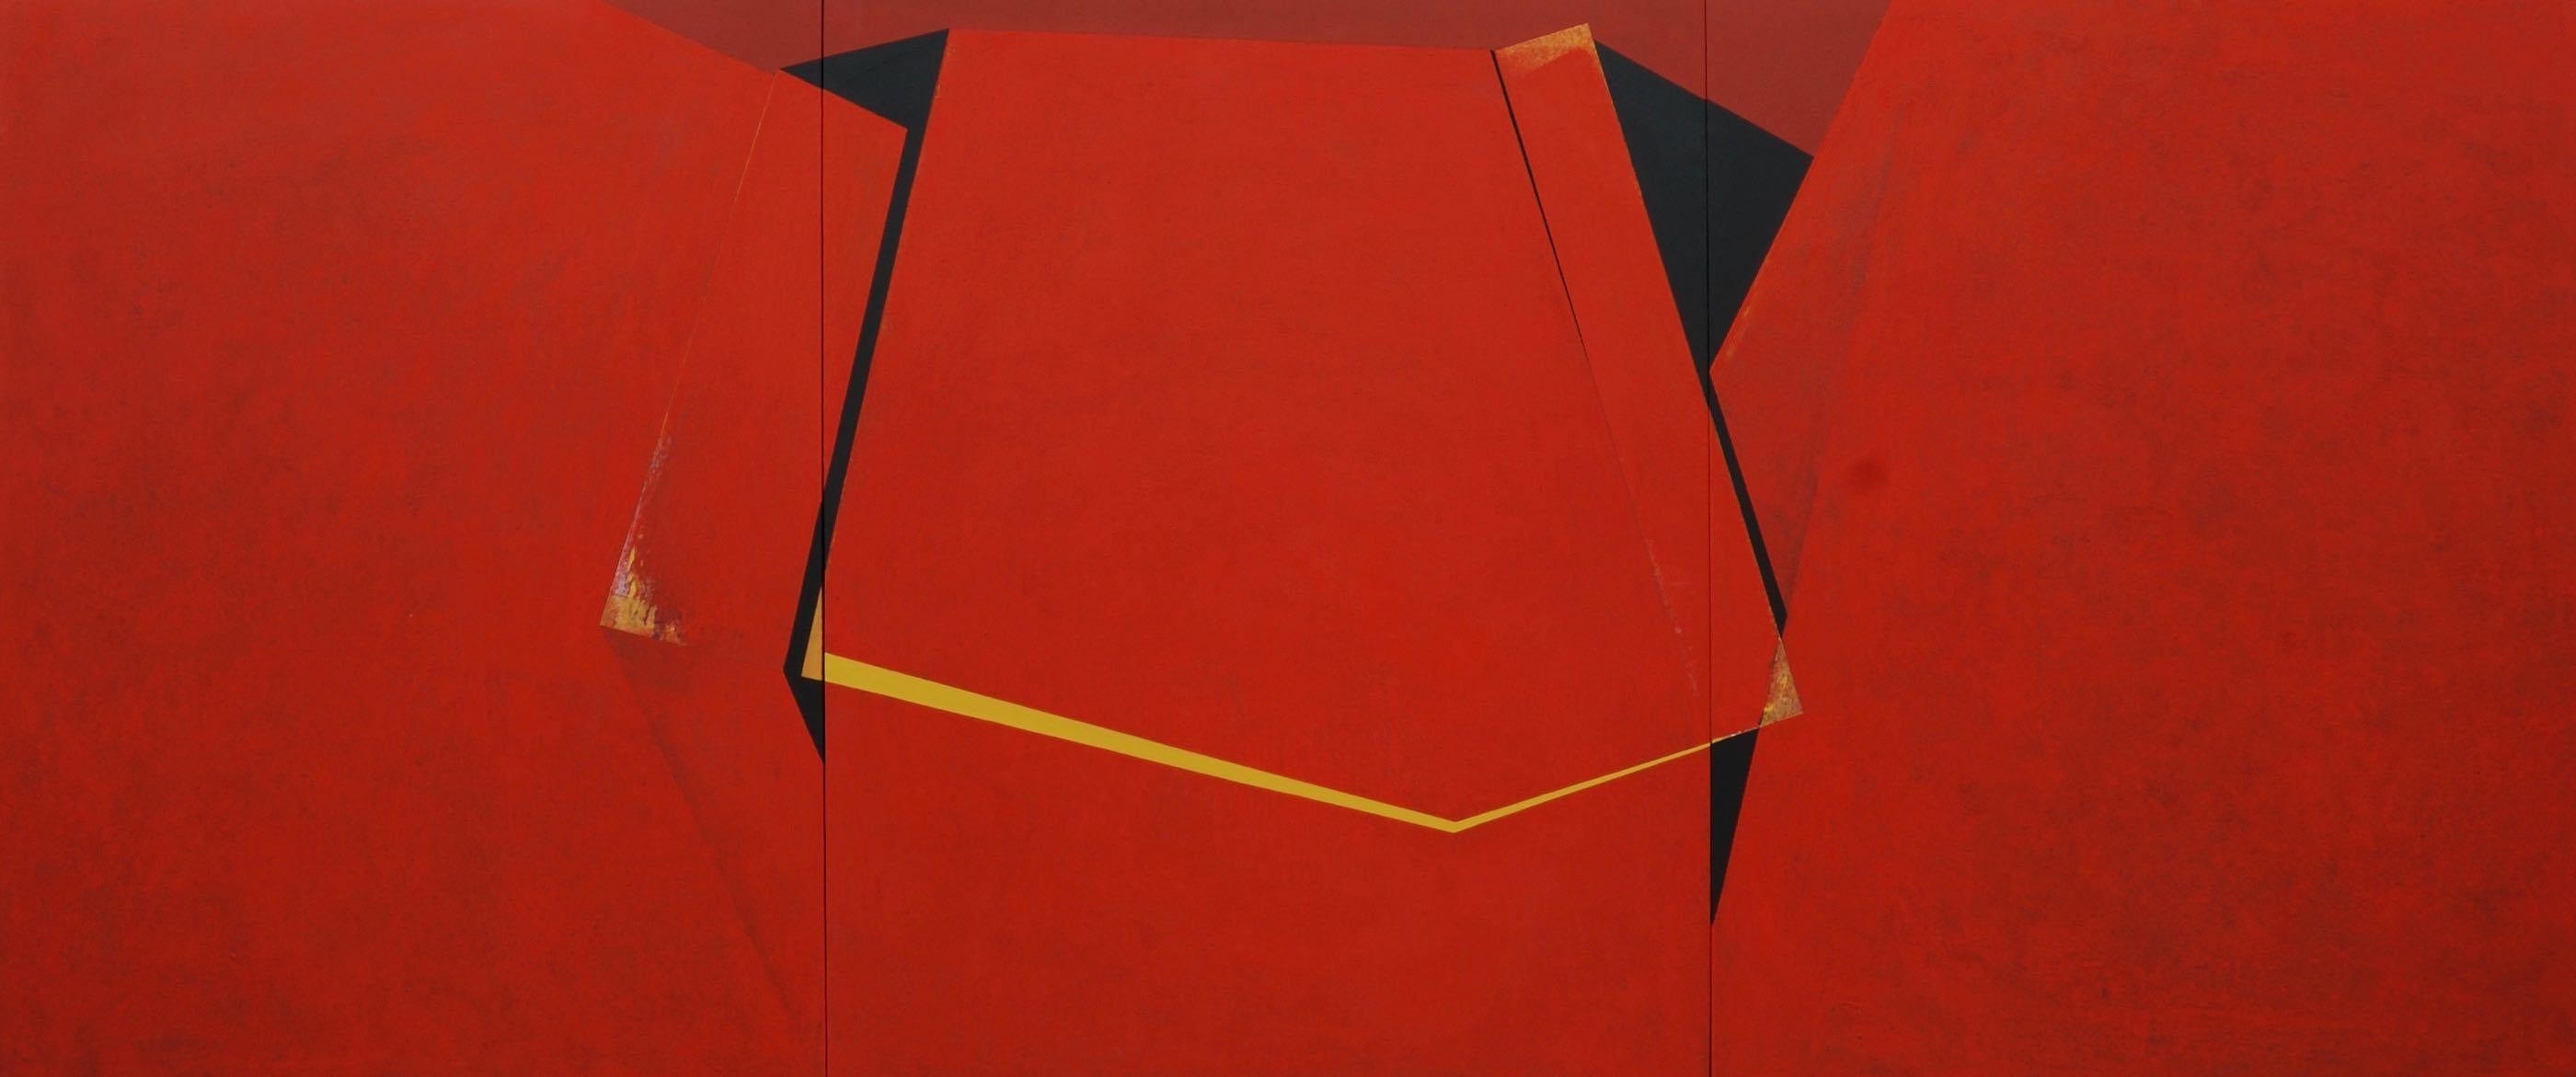 Through the Red: Large Abstract Hard Edge Painting on Canvas by Silvia Lerin